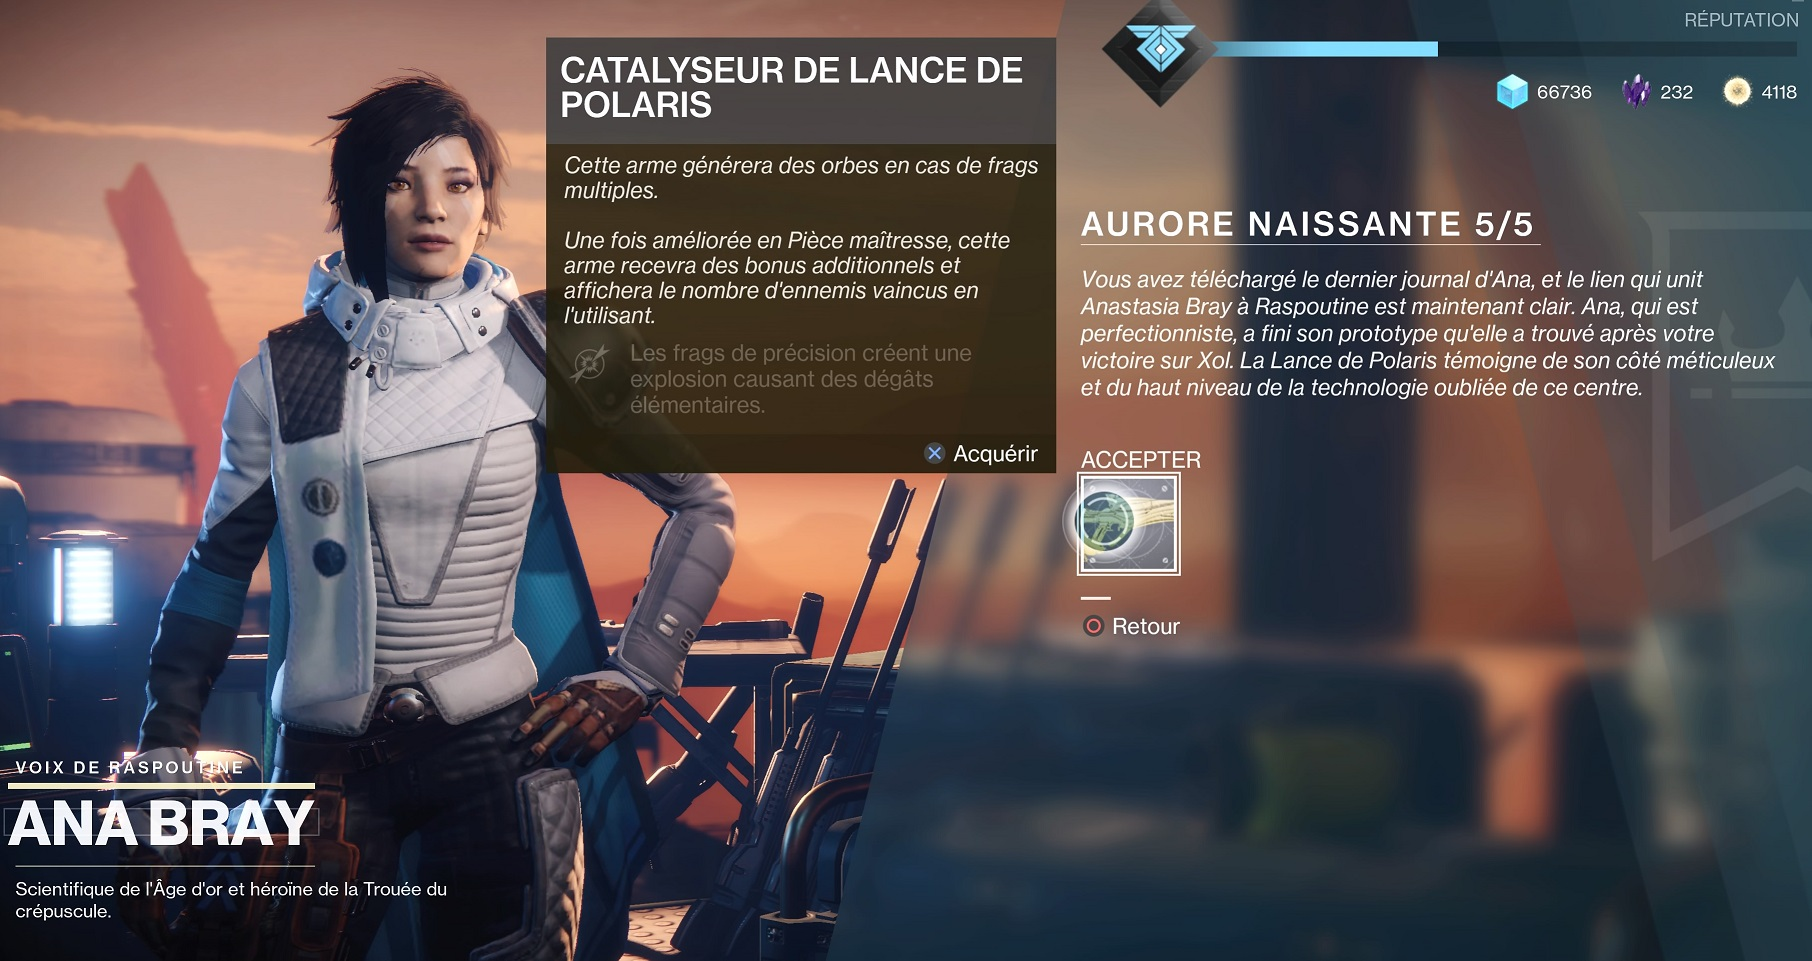 Destiny-2-Catalyseur-lance-de-polaris